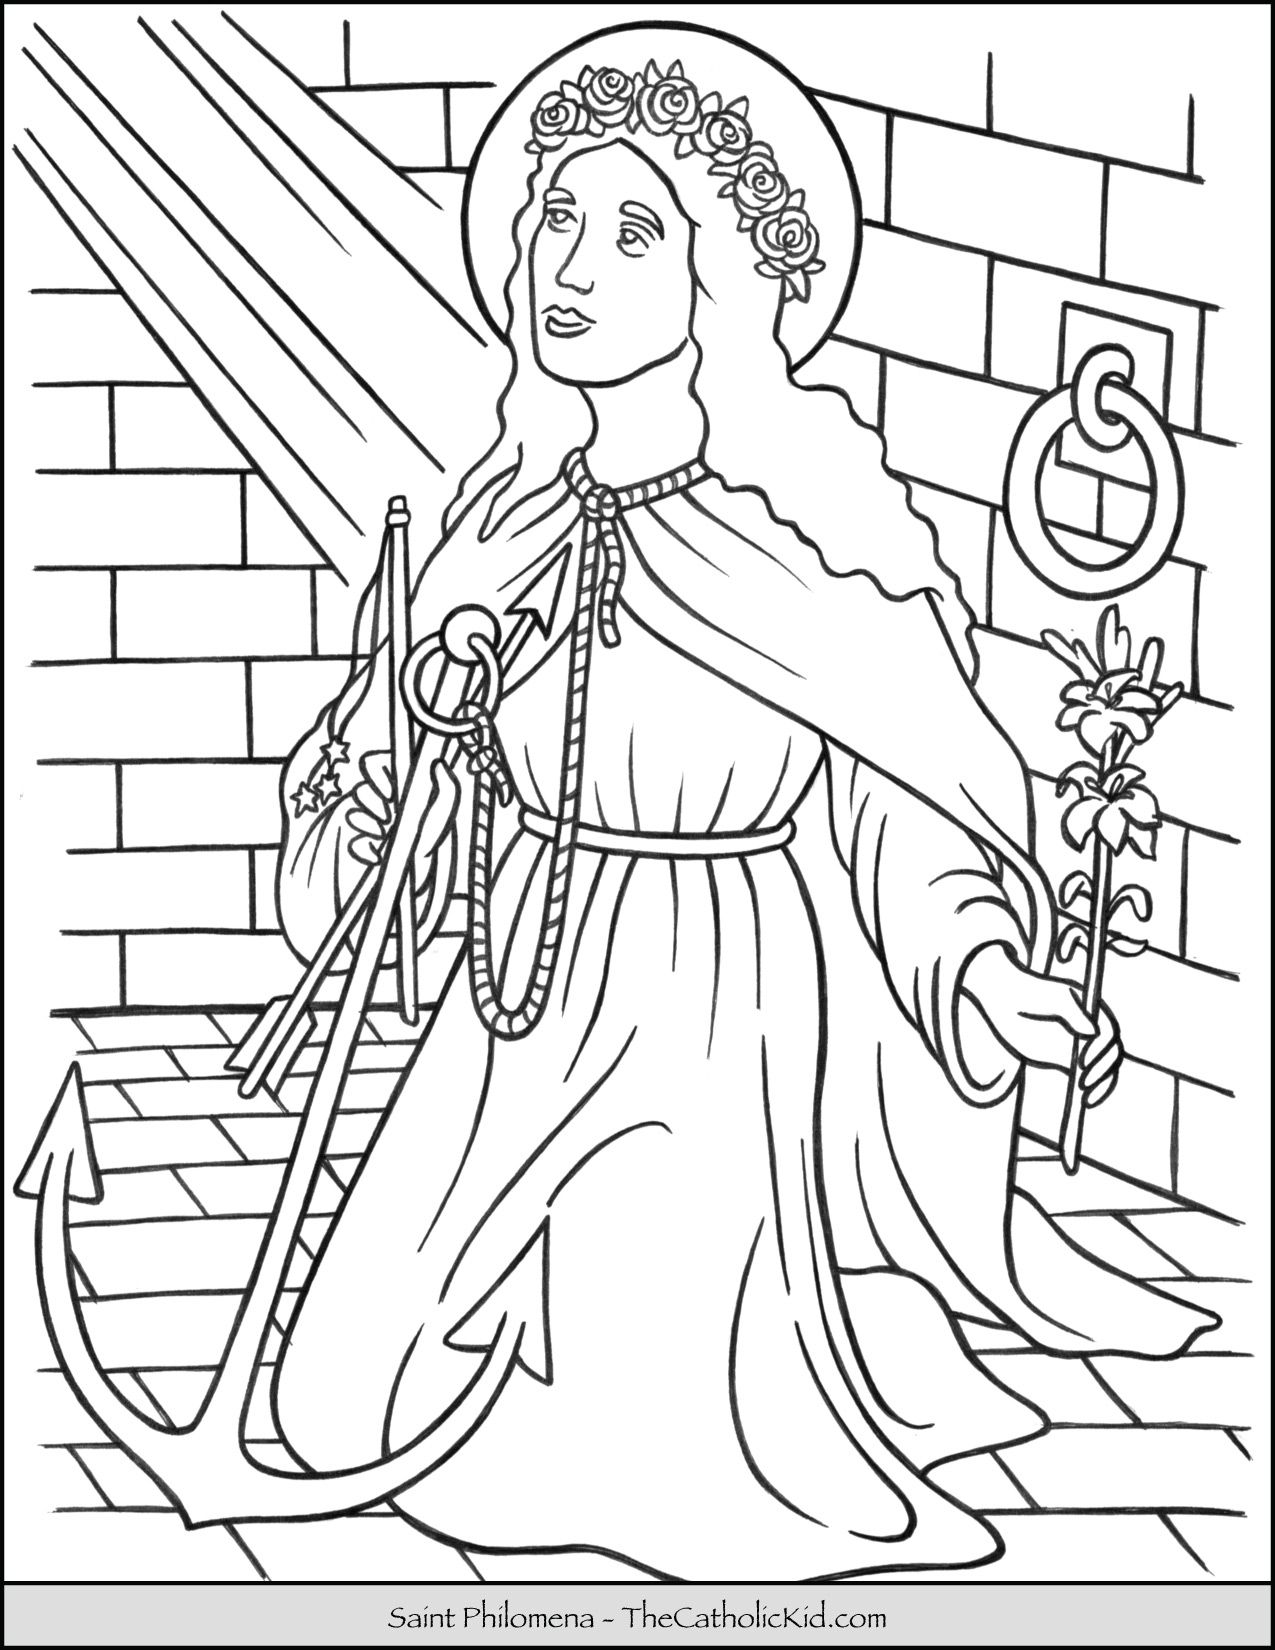 All Saints Day Coloring Pages For Kindergarteners